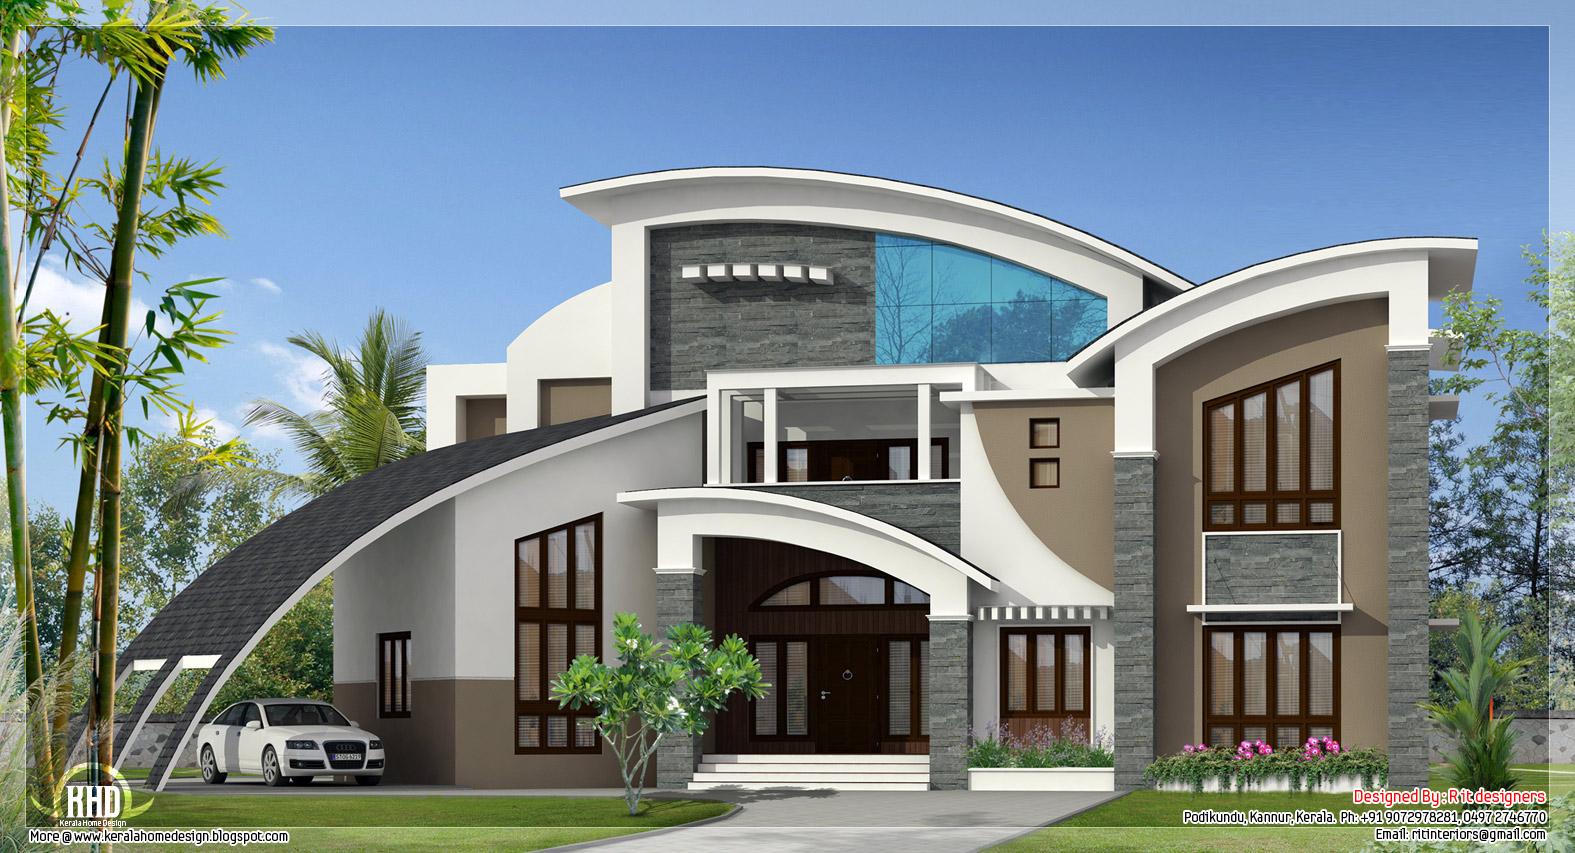 4 bedroom modern flat roof house keralahousedesigns for Design a building